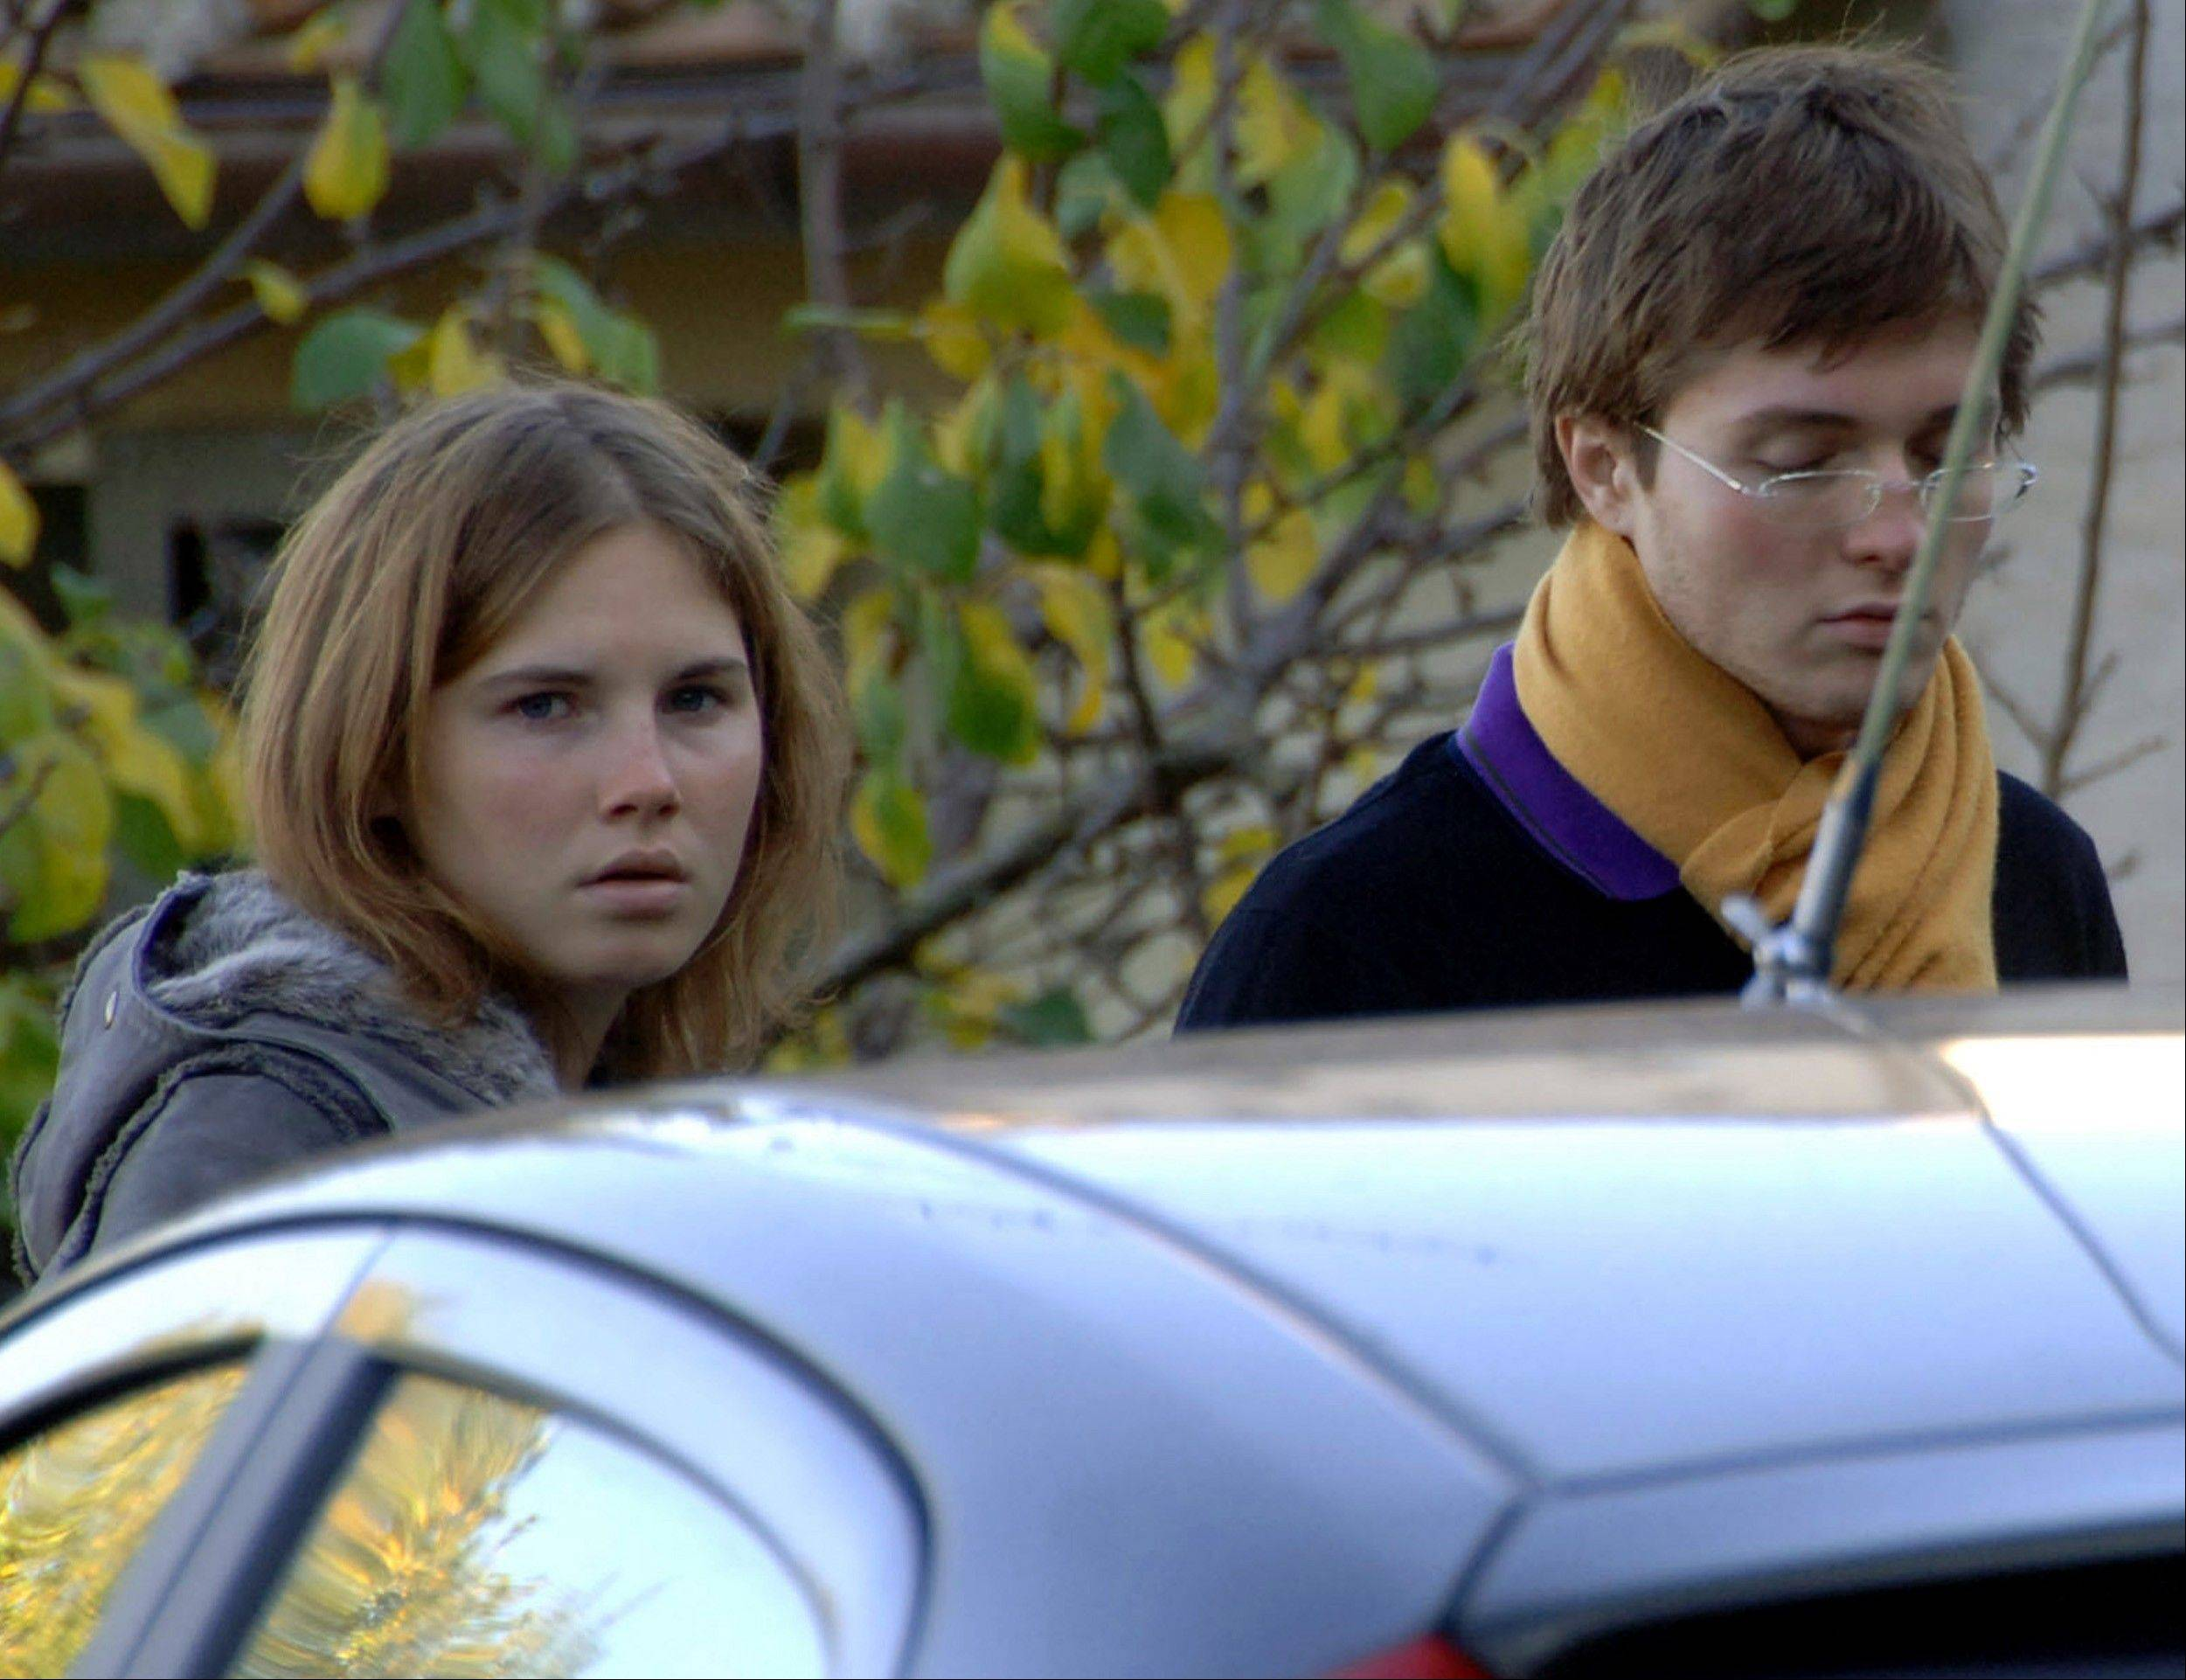 Amanda Knox, left, and Raffaele Sollecito, stand outside the rented house where 21-year-old British student Meredith Kercher was found dead in 2007. The state's prosecutor is arguing his case that an appeals court should reinstate the guilty verdict against U.S. exchange student Amanda Knox for the grisly 2007 murder of her roommate.